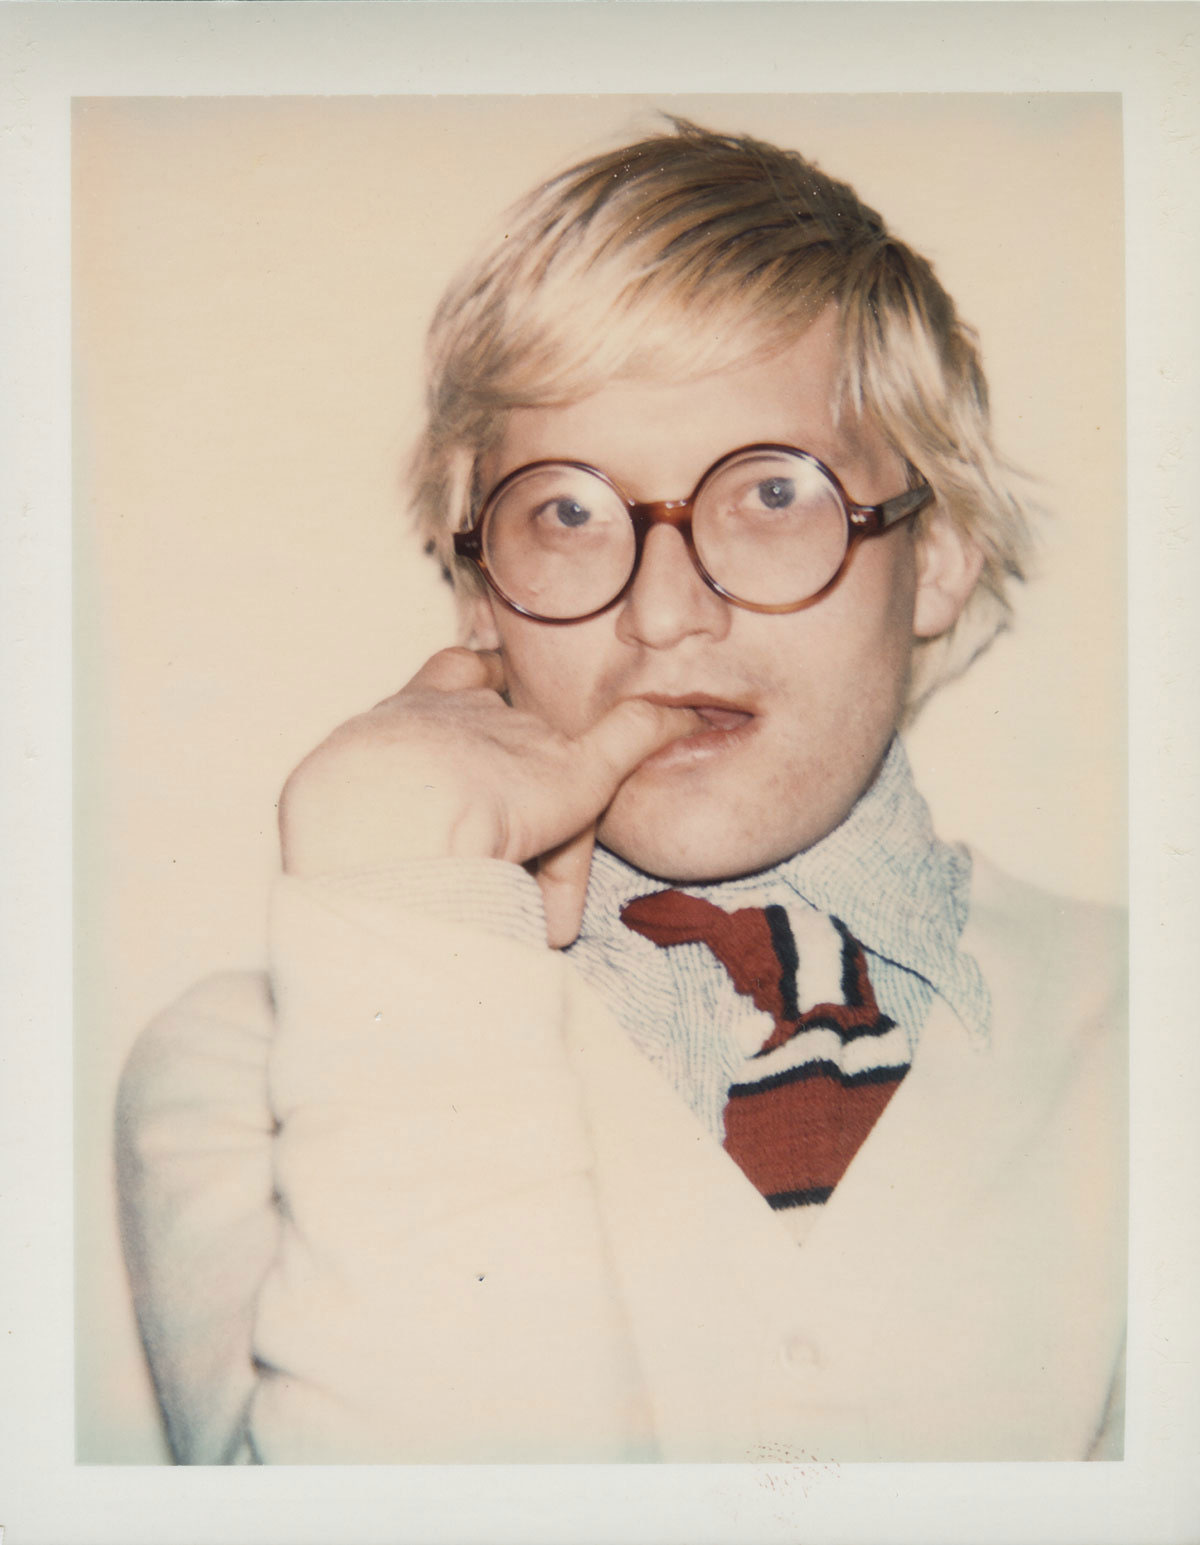 David Hockney, 1974 by Andy Warhol. From Andy Warhol Portraits